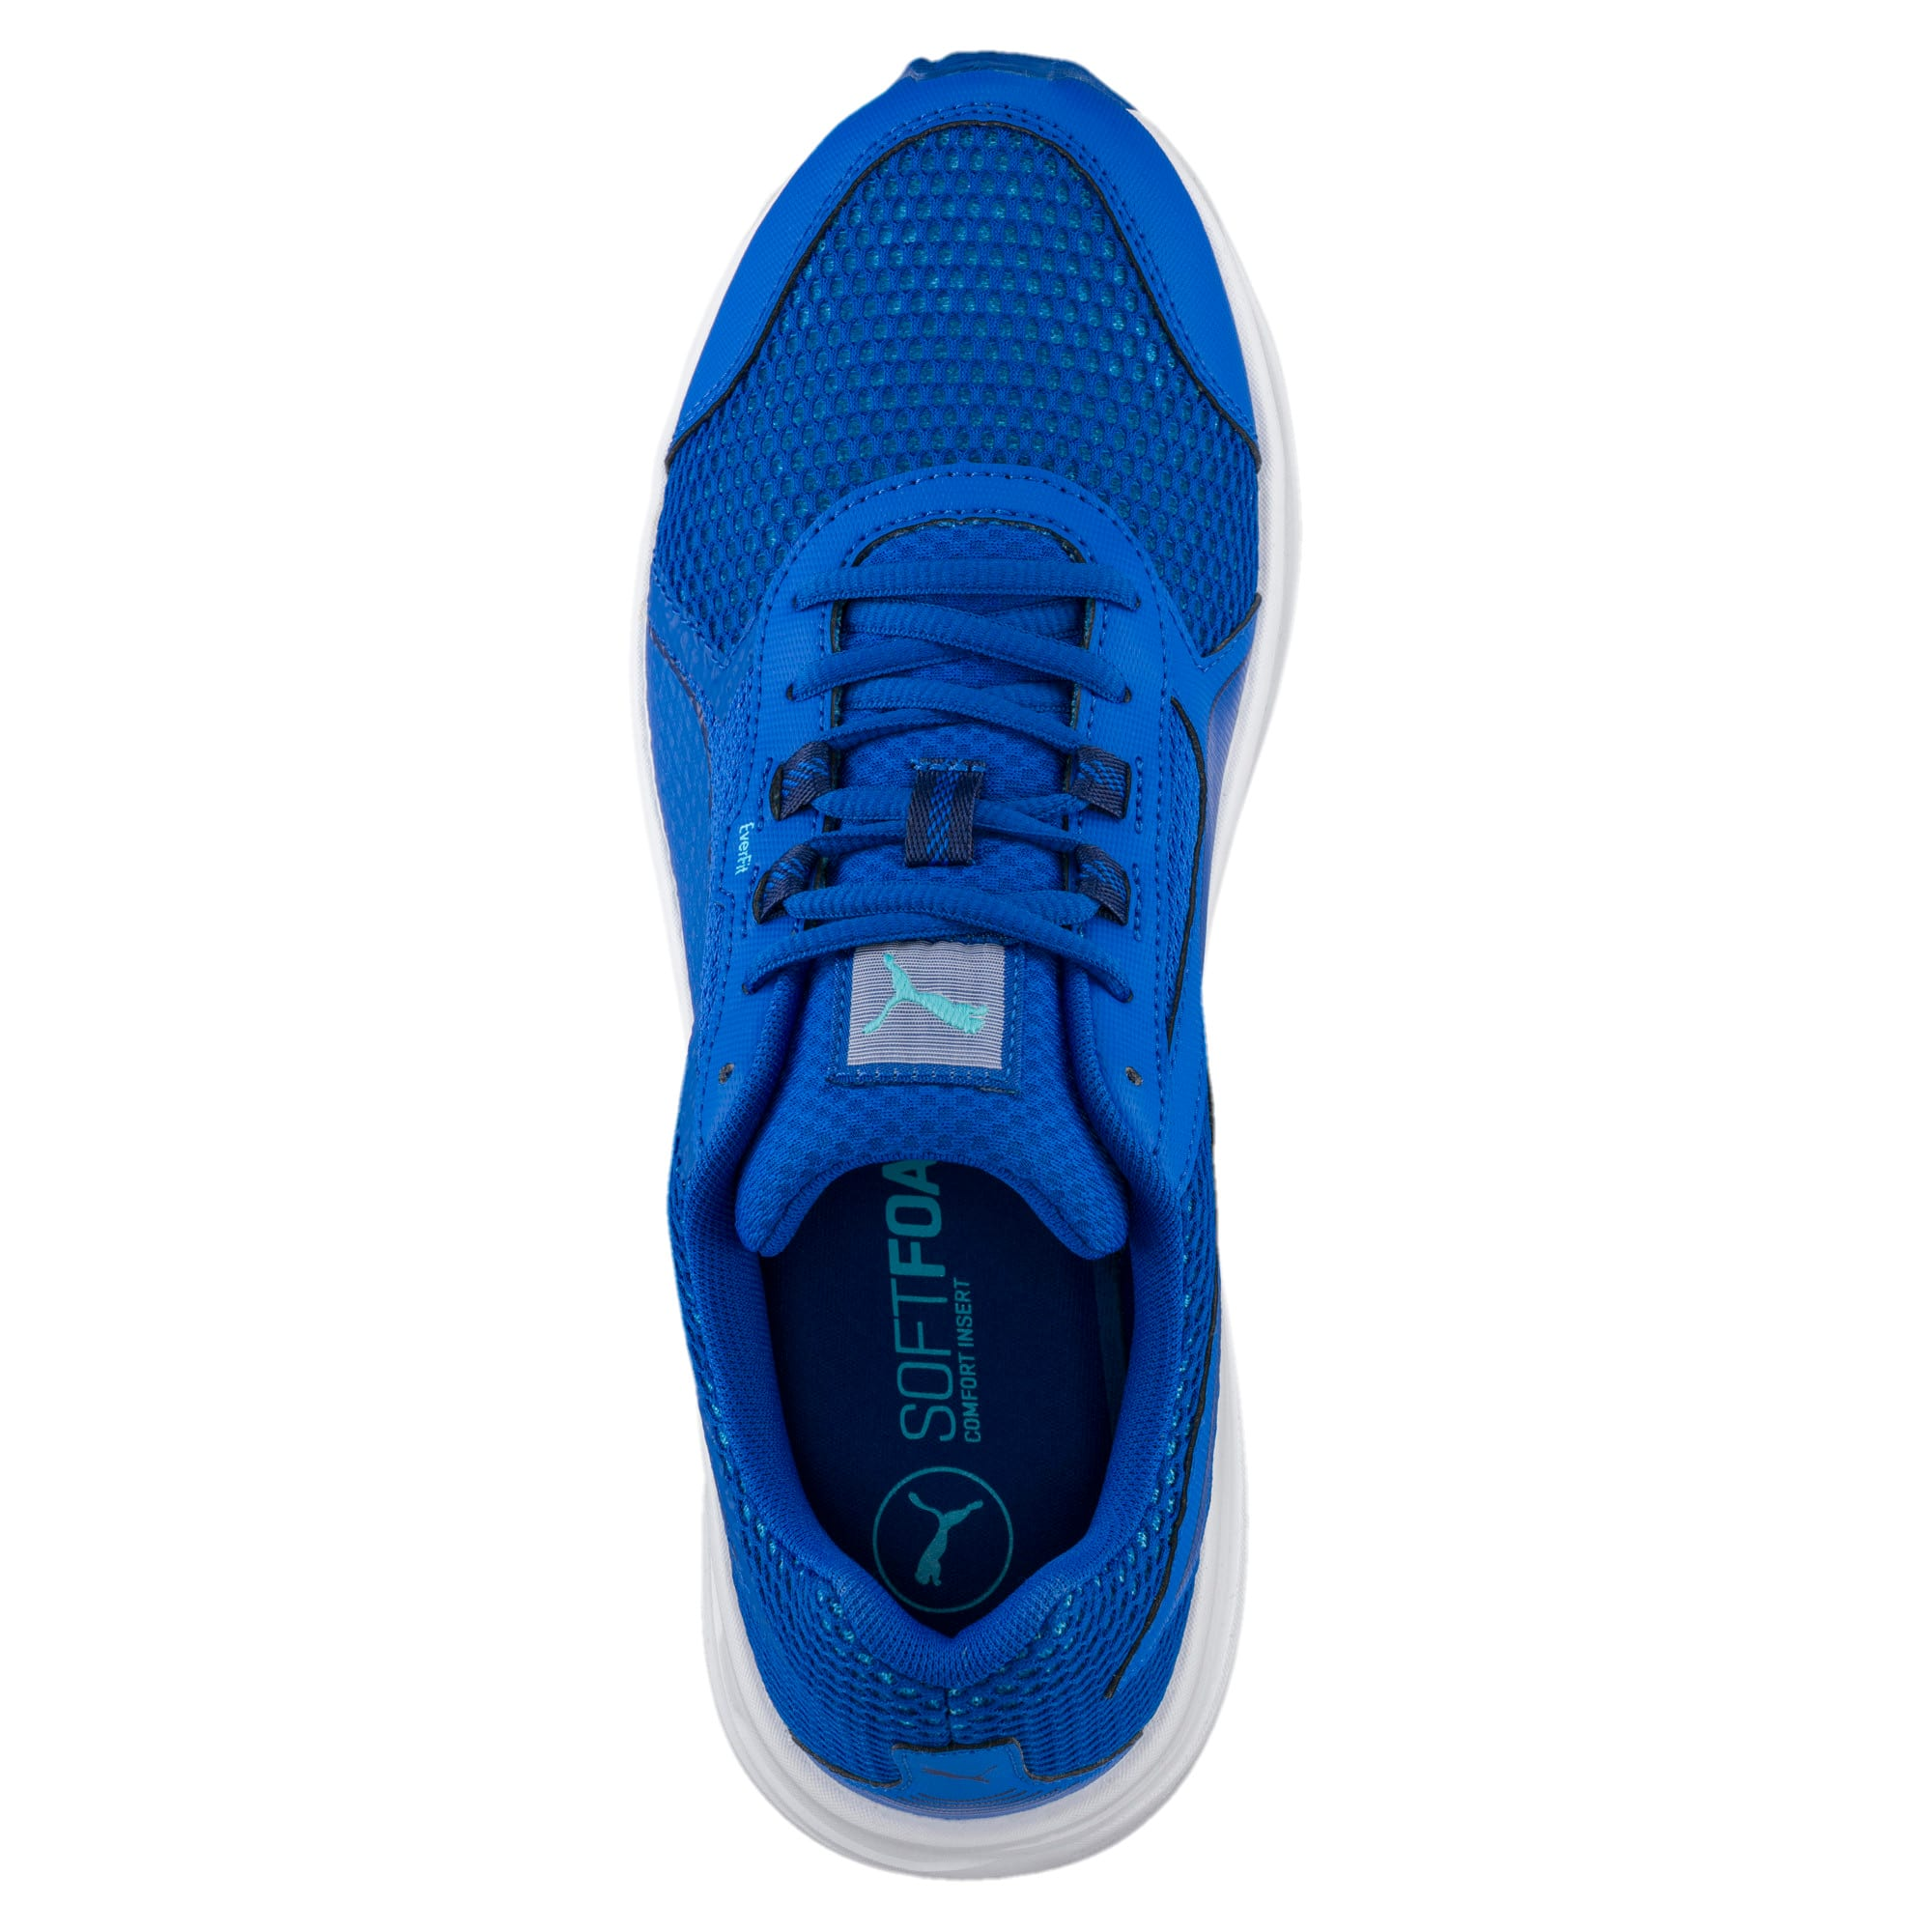 Thumbnail 5 of Essential Runner Men's Running Shoes, Lapis Blue-Blue Depths-Turq, medium-IND